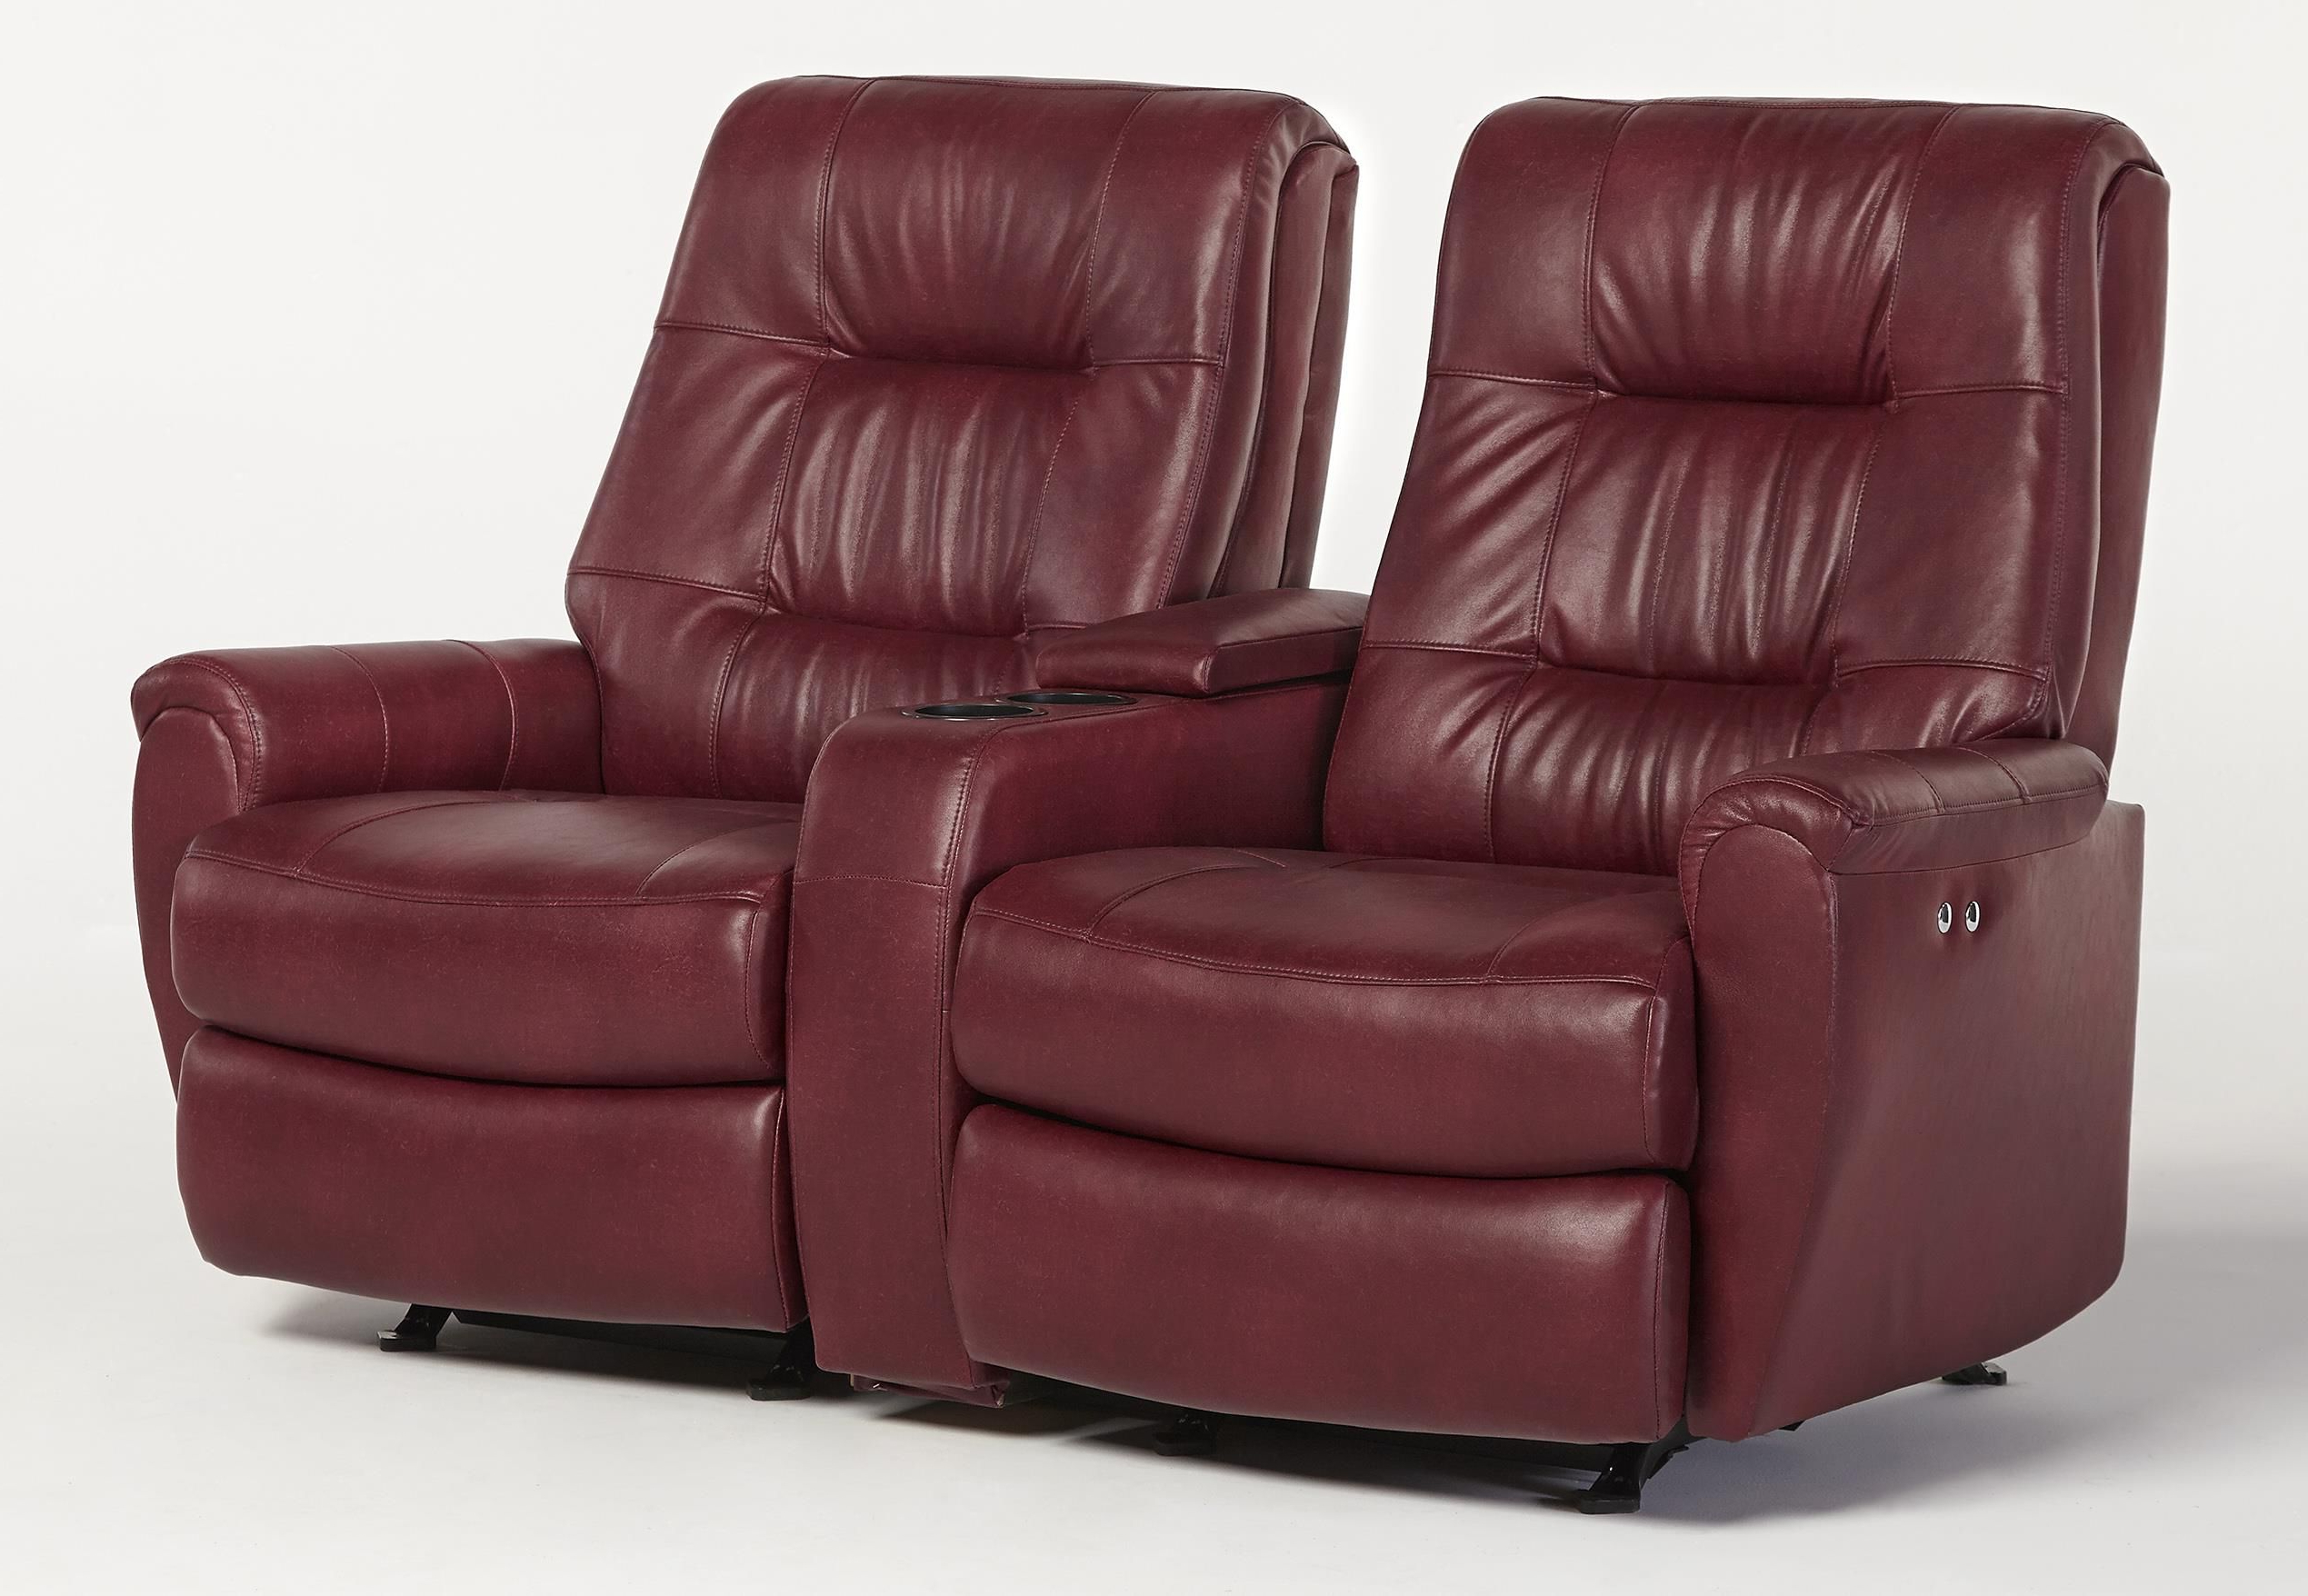 Small Scale Reclining Space With Regard To Marcus Oyster 6 Piece Sectionals With Power Headrest And Usb (View 8 of 20)